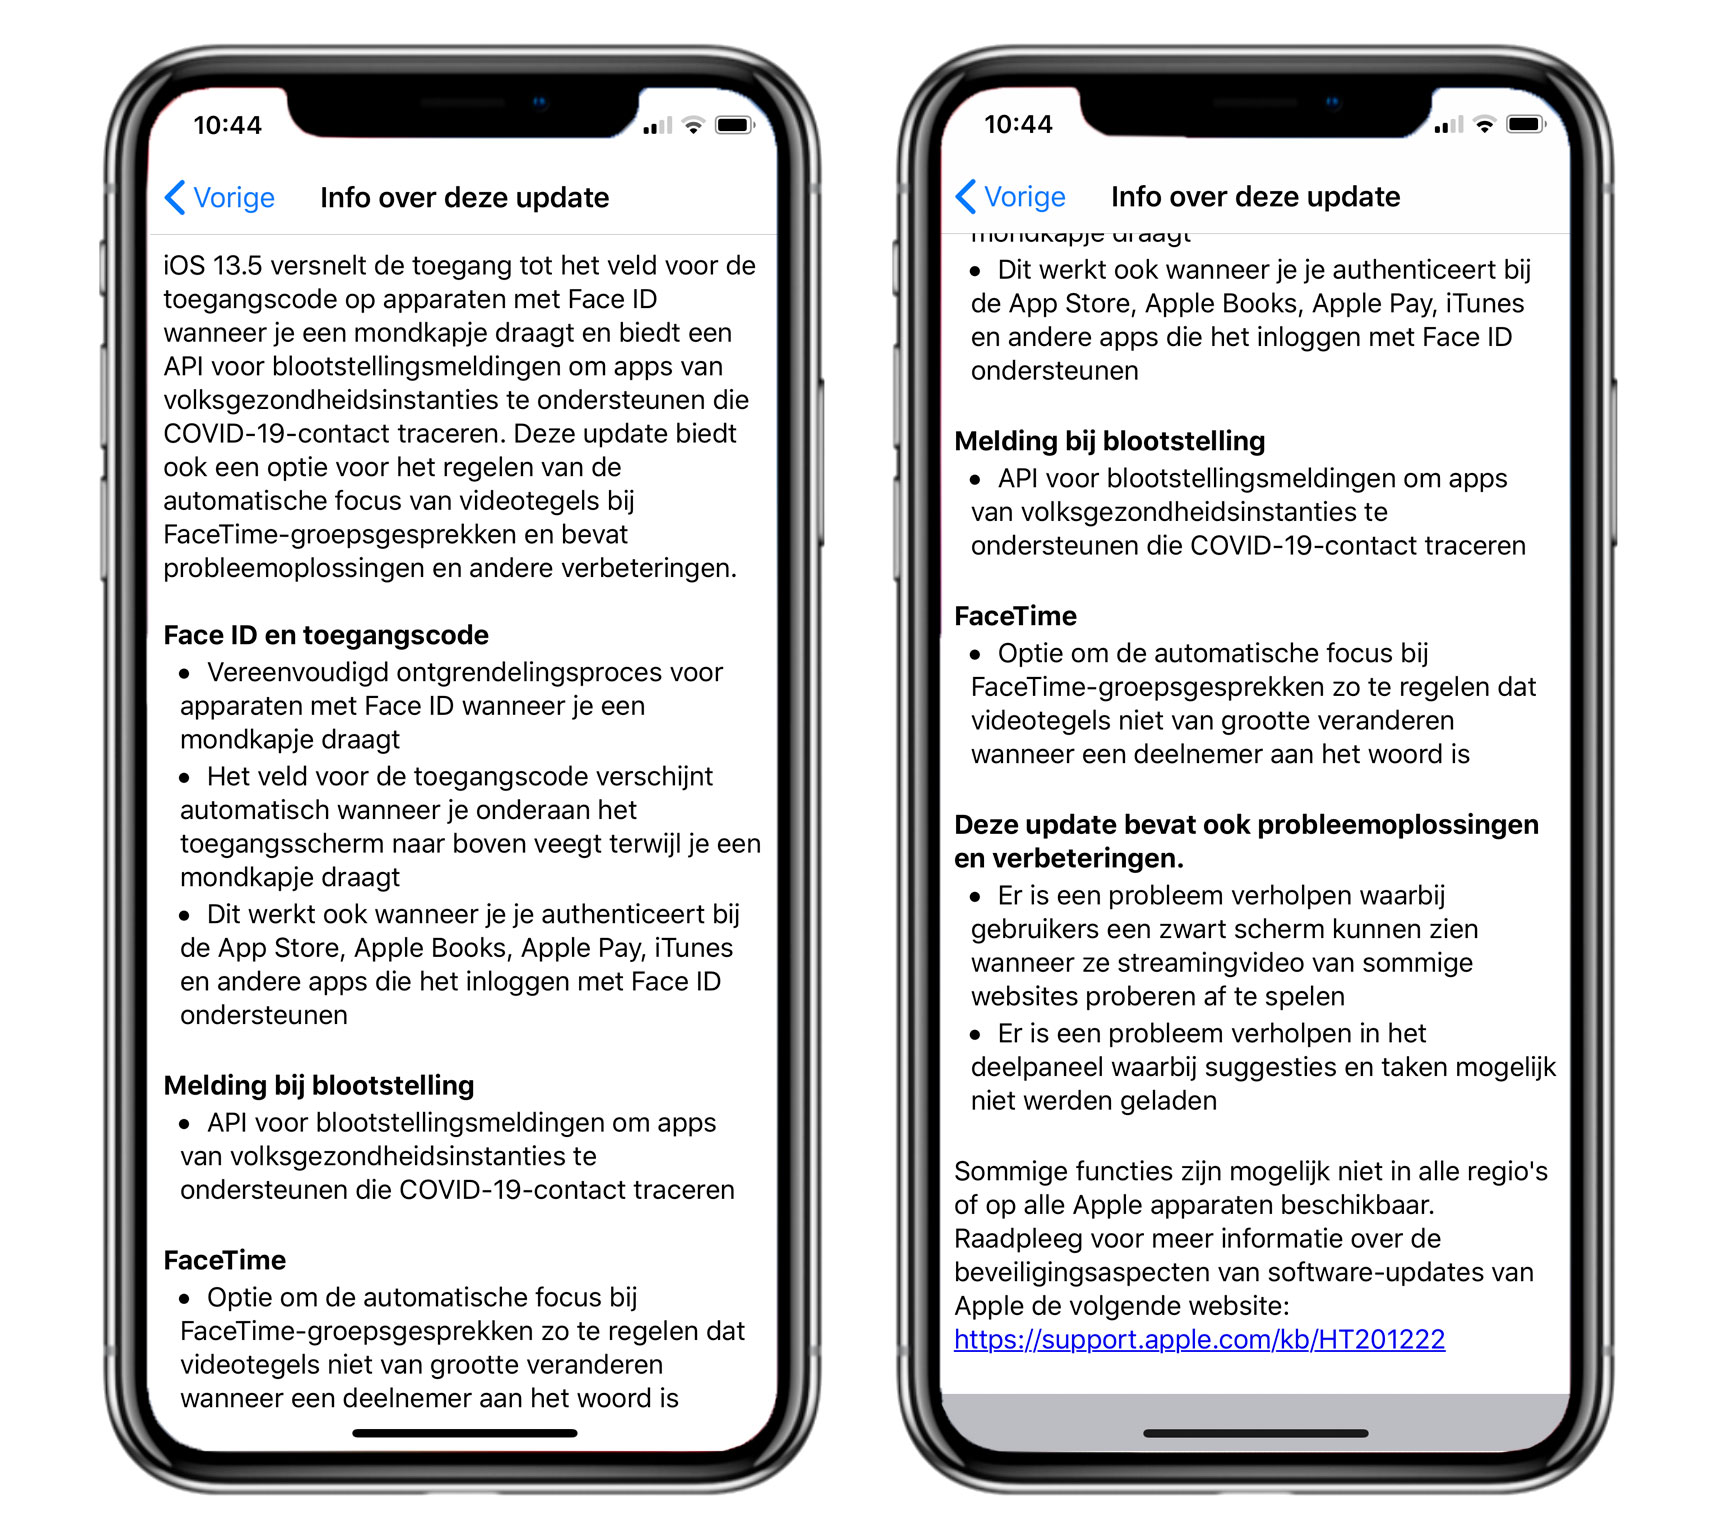 https://www.macfreak.nl/modules/news/images/zArt.iOS13.5ReleaseNotes.jpg